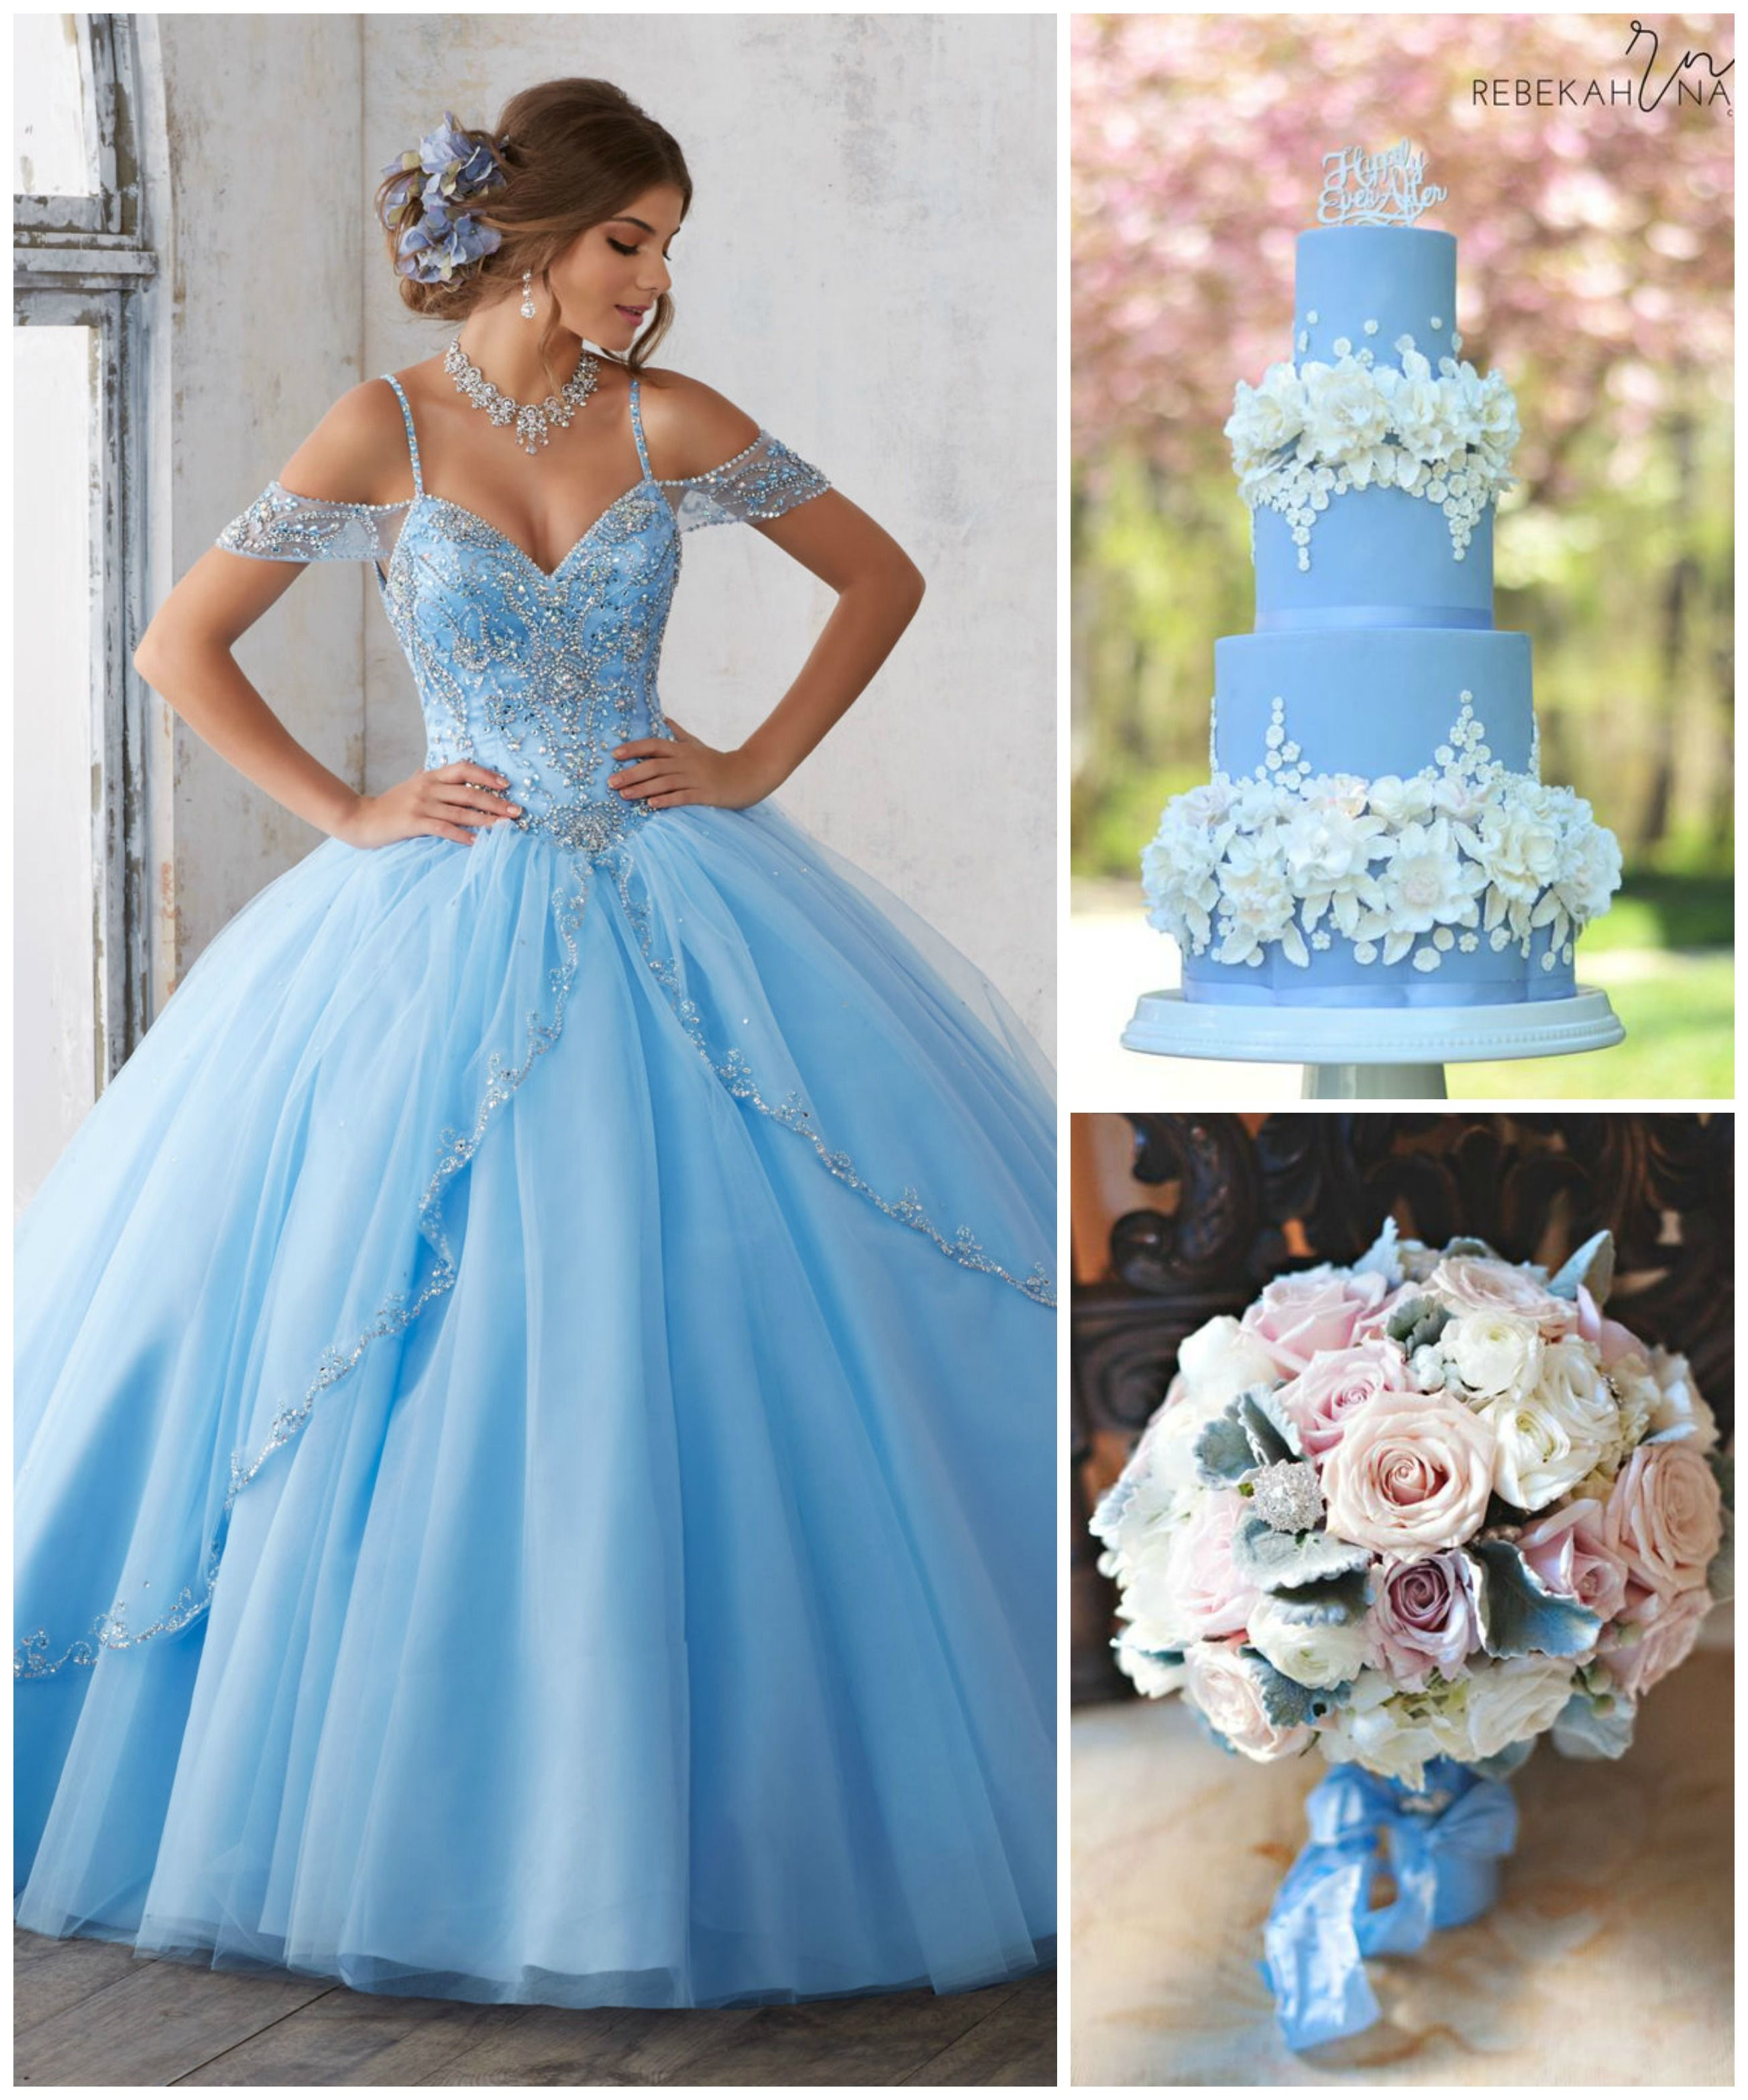 Quince Theme Decorations | Quinceanera ideas, Princess theme and ...